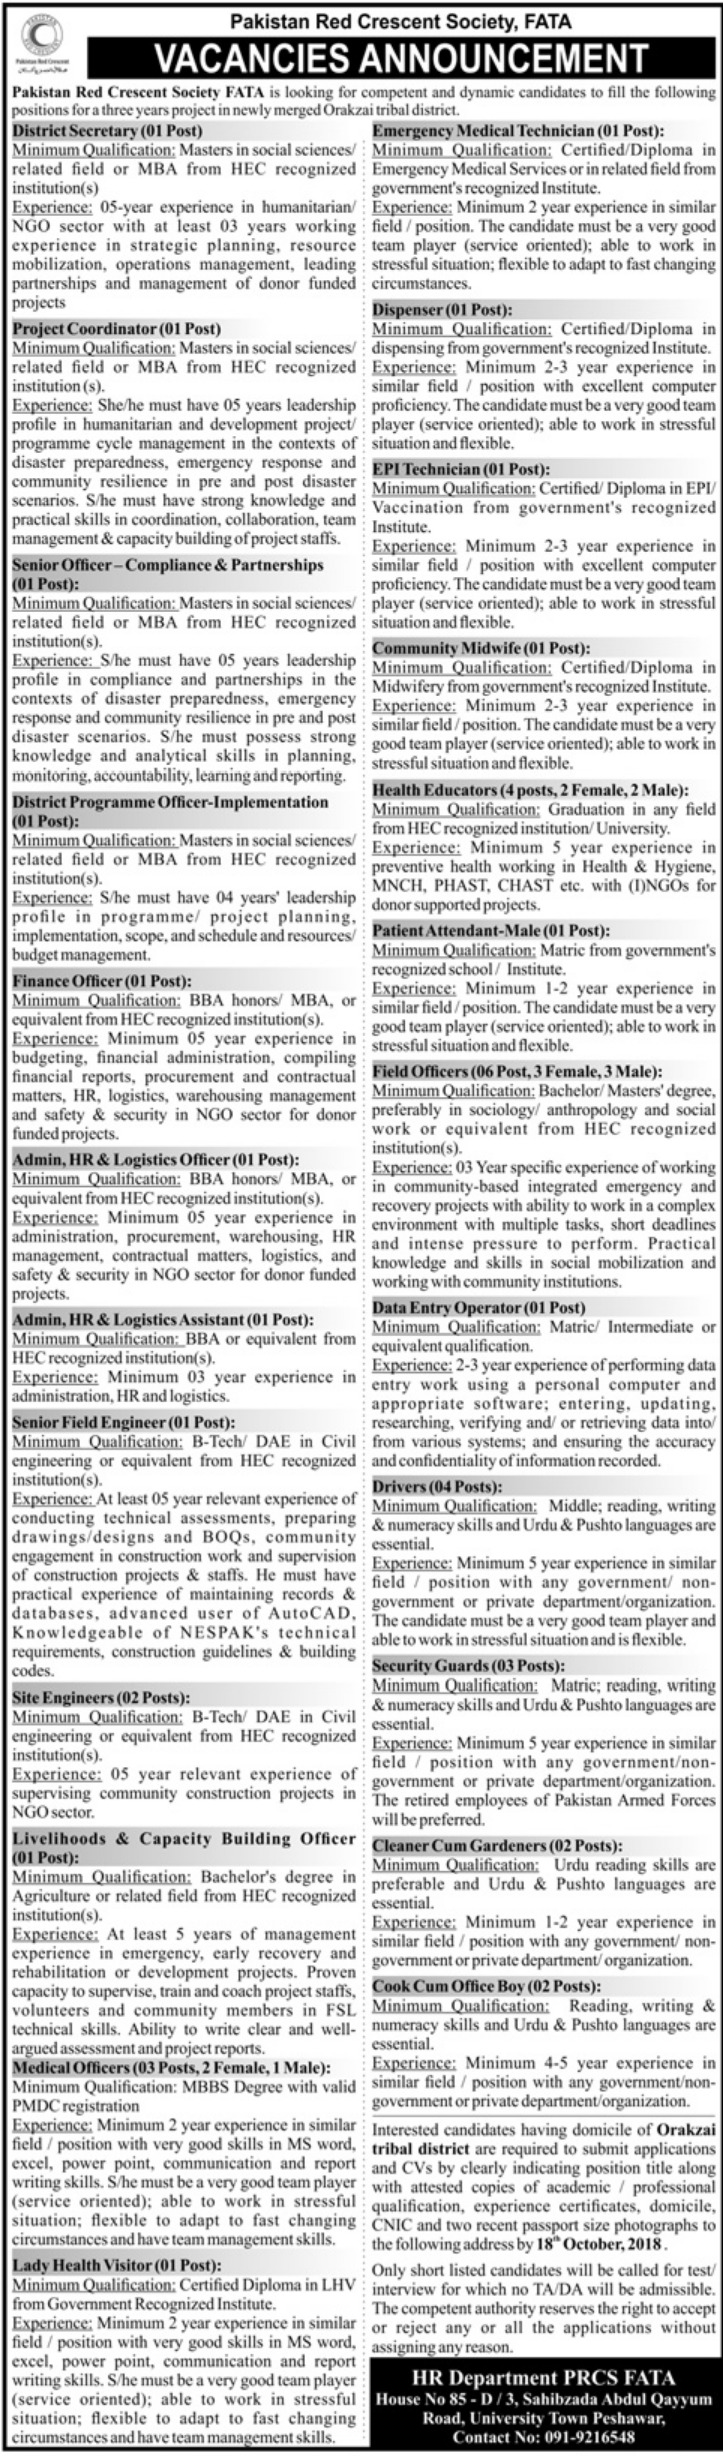 Pakistan Red Crescent Society PRCS FATA Jobs 2018